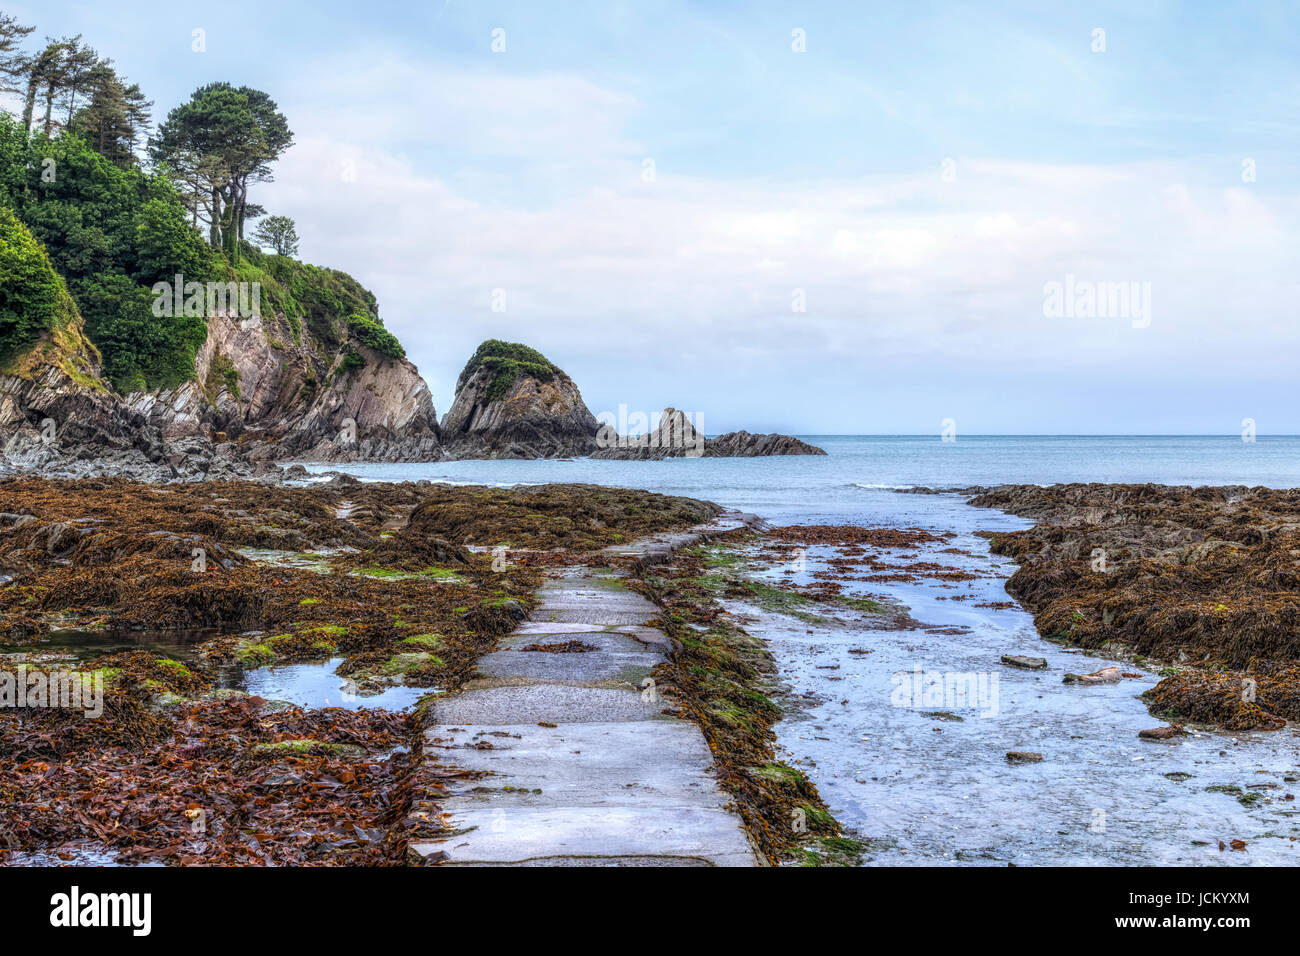 Lee Bay, Ilfracombe, Devon, England, UK - Stock Image